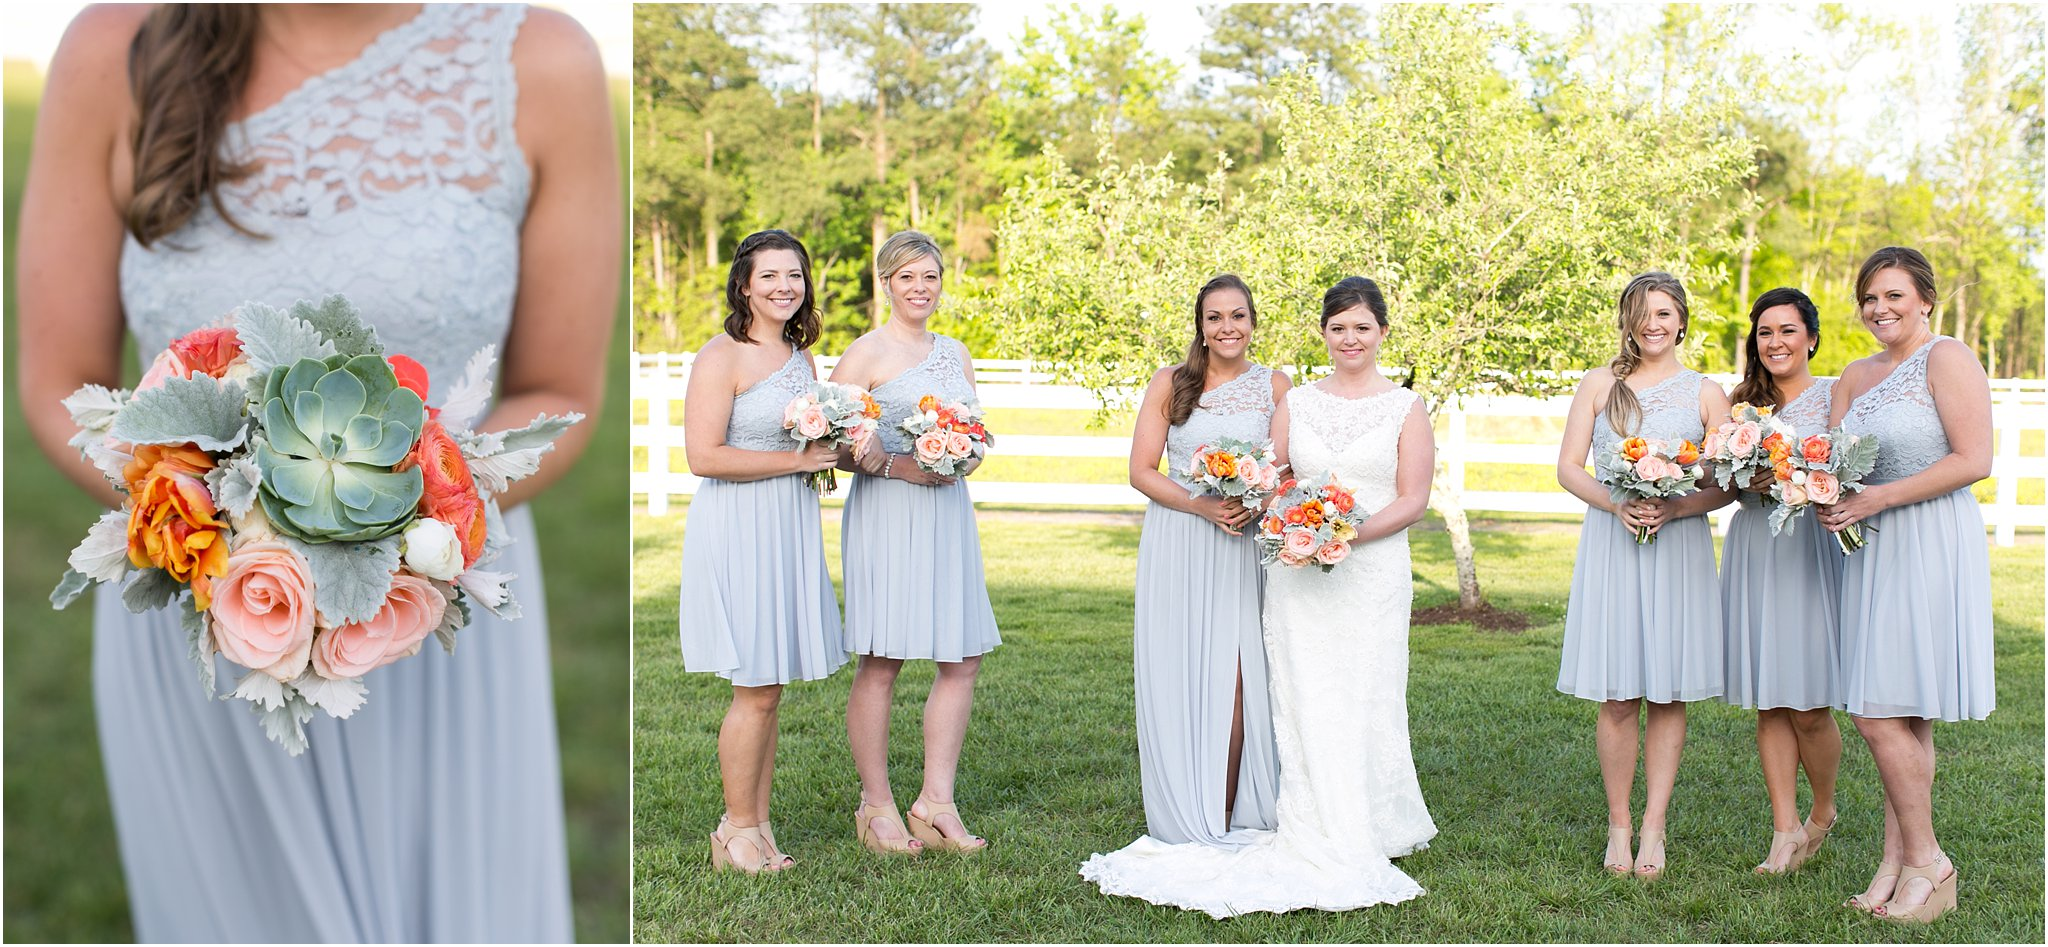 jessica_ryan_photography_holly_ridge_manor_wedding_roost_flowers_jamie_leigh_events_dhalia_edwards_candid_vibrant_wedding_colors_1313